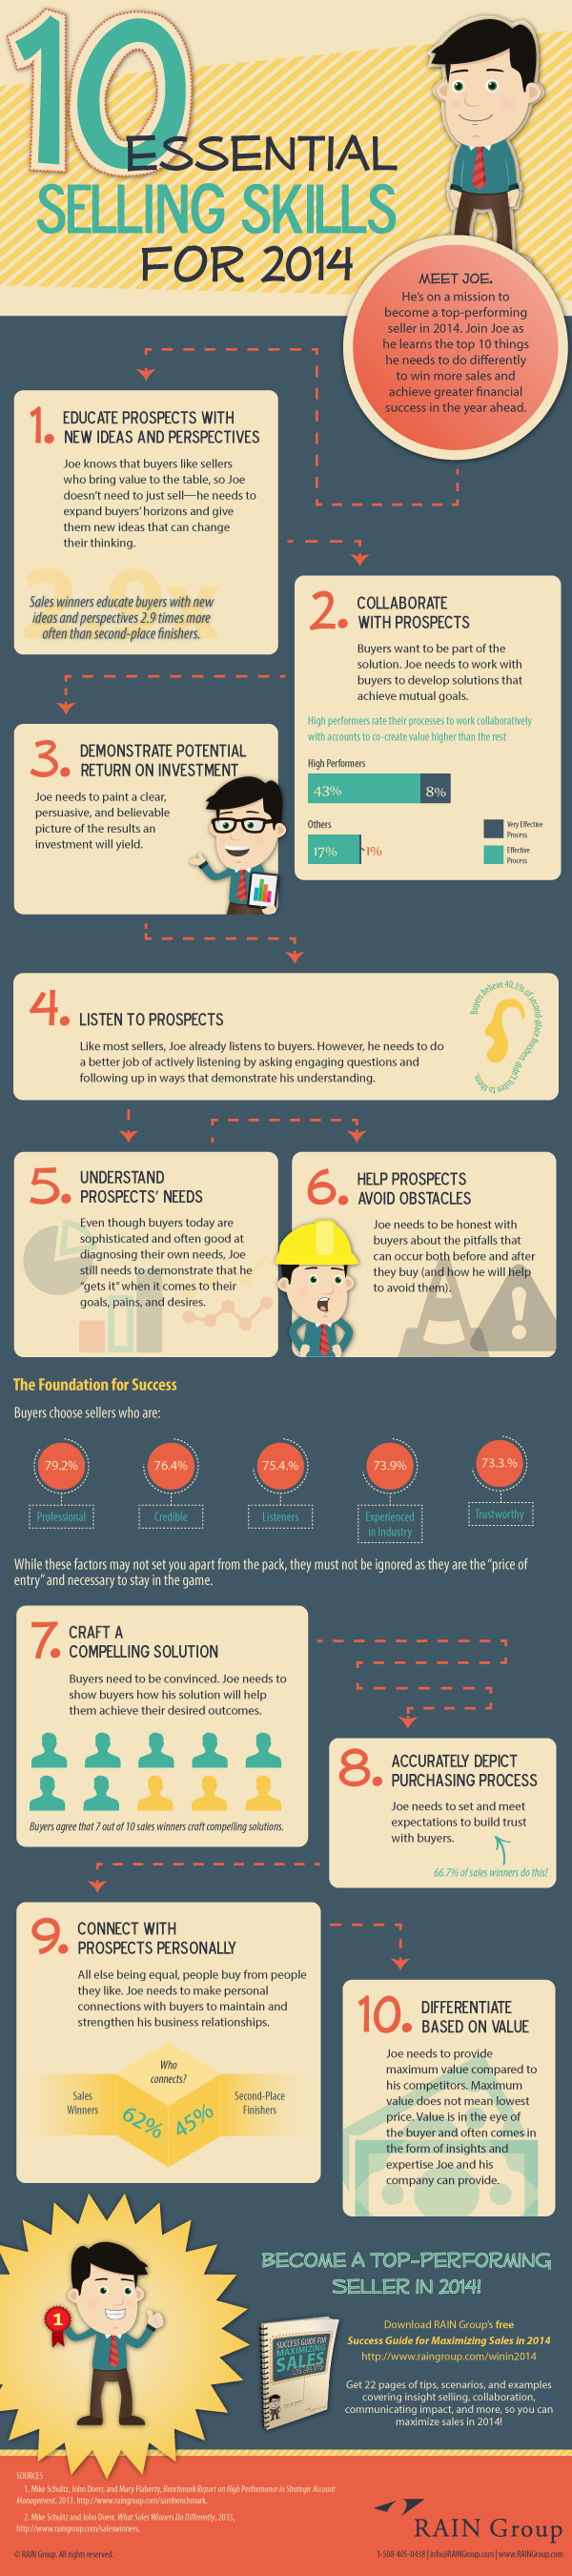 10 Essential Selling Skills for 2014 600px resized 600